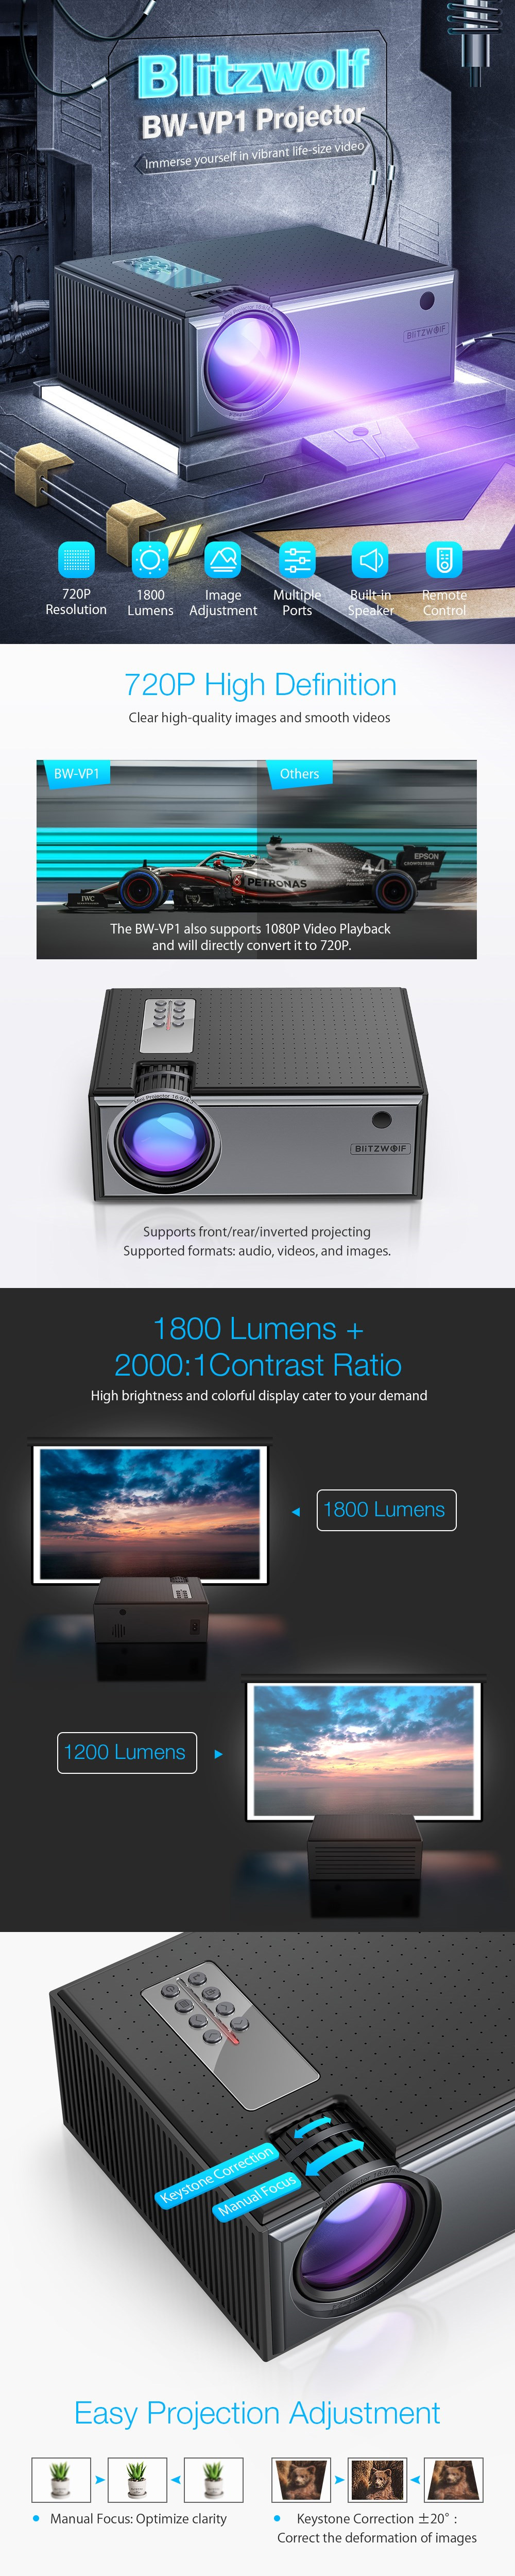 Blitzwolf® BW-VP1 LCD Projector 1800 Lumens Support 1080P Input Multiple Ports Portable Smart Home Theater Projector With Remote Control